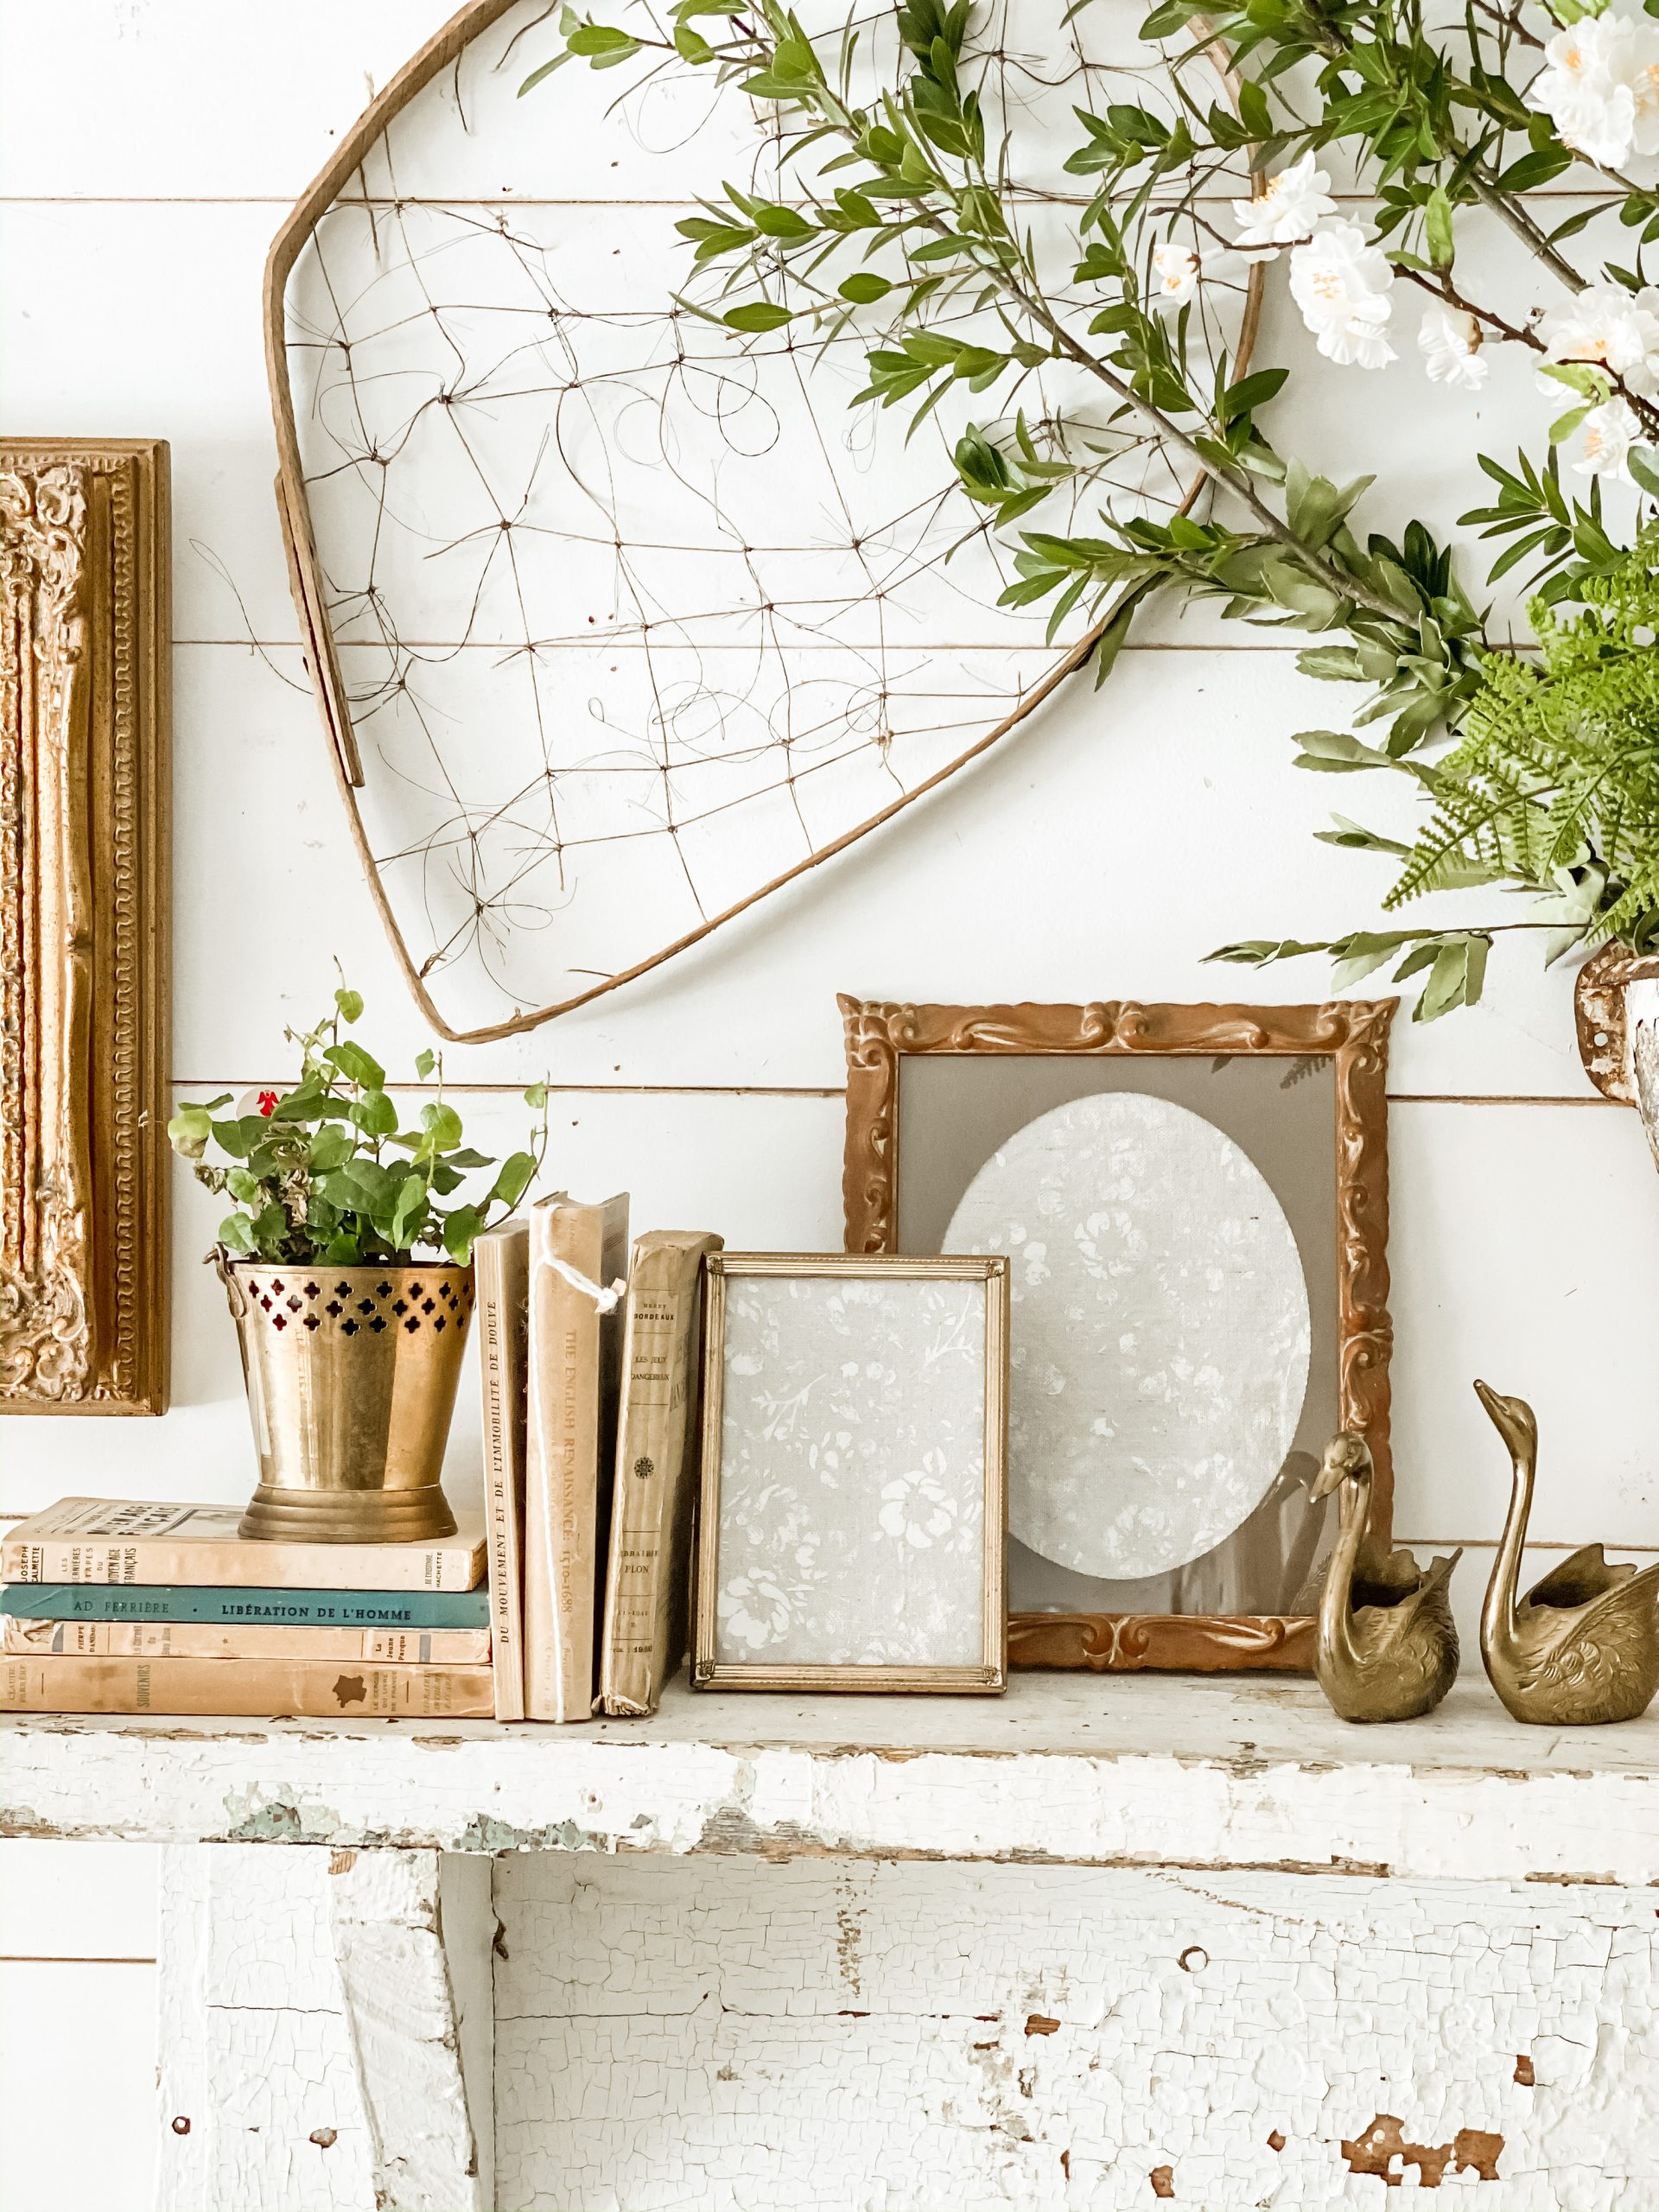 How to Create Simple Decor Vignettes